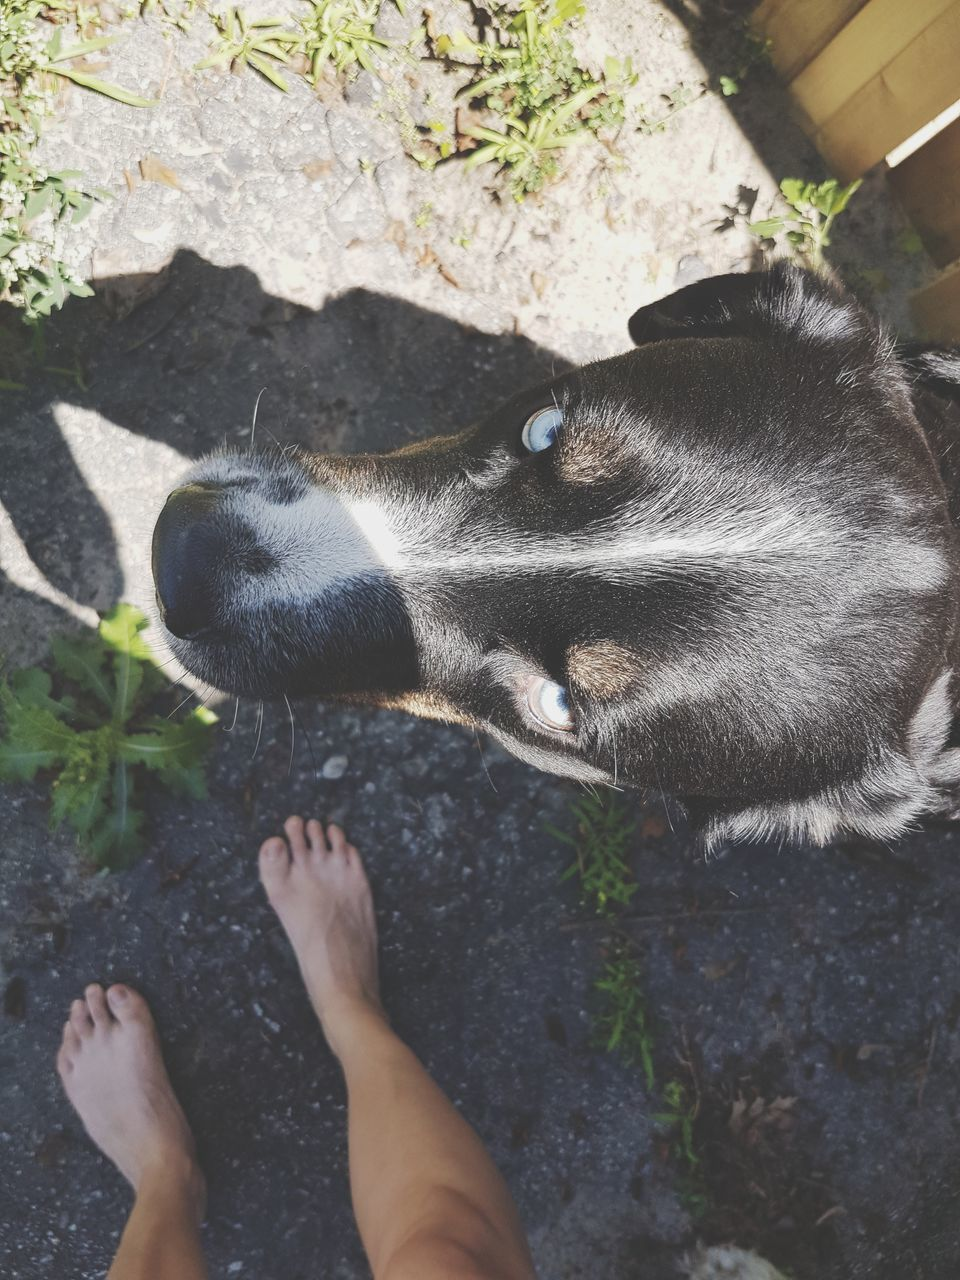 animal themes, one animal, domestic animals, pets, mammal, real people, one person, day, outdoors, low section, human leg, human body part, high angle view, domestic cat, plant, feline, nature, close-up, human hand